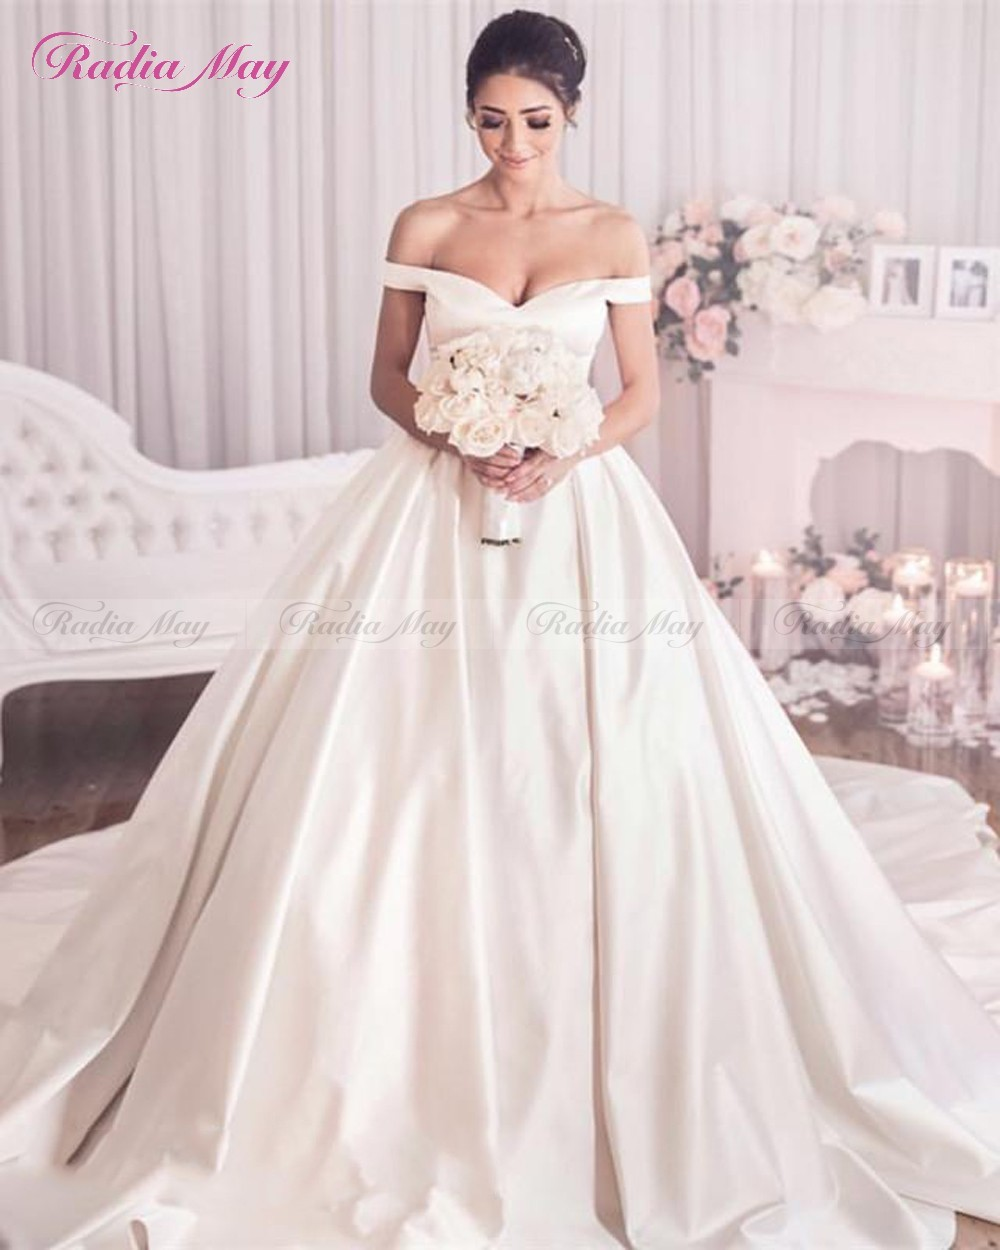 06a58741e5 US $149.6 20% OFF|Elegant White Satin Ball Gown Plus Size Wedding Dress  with Pockets 2019 Off Shoulder Luxury Chapel Train Wedding Gowns Turkey-in  ...